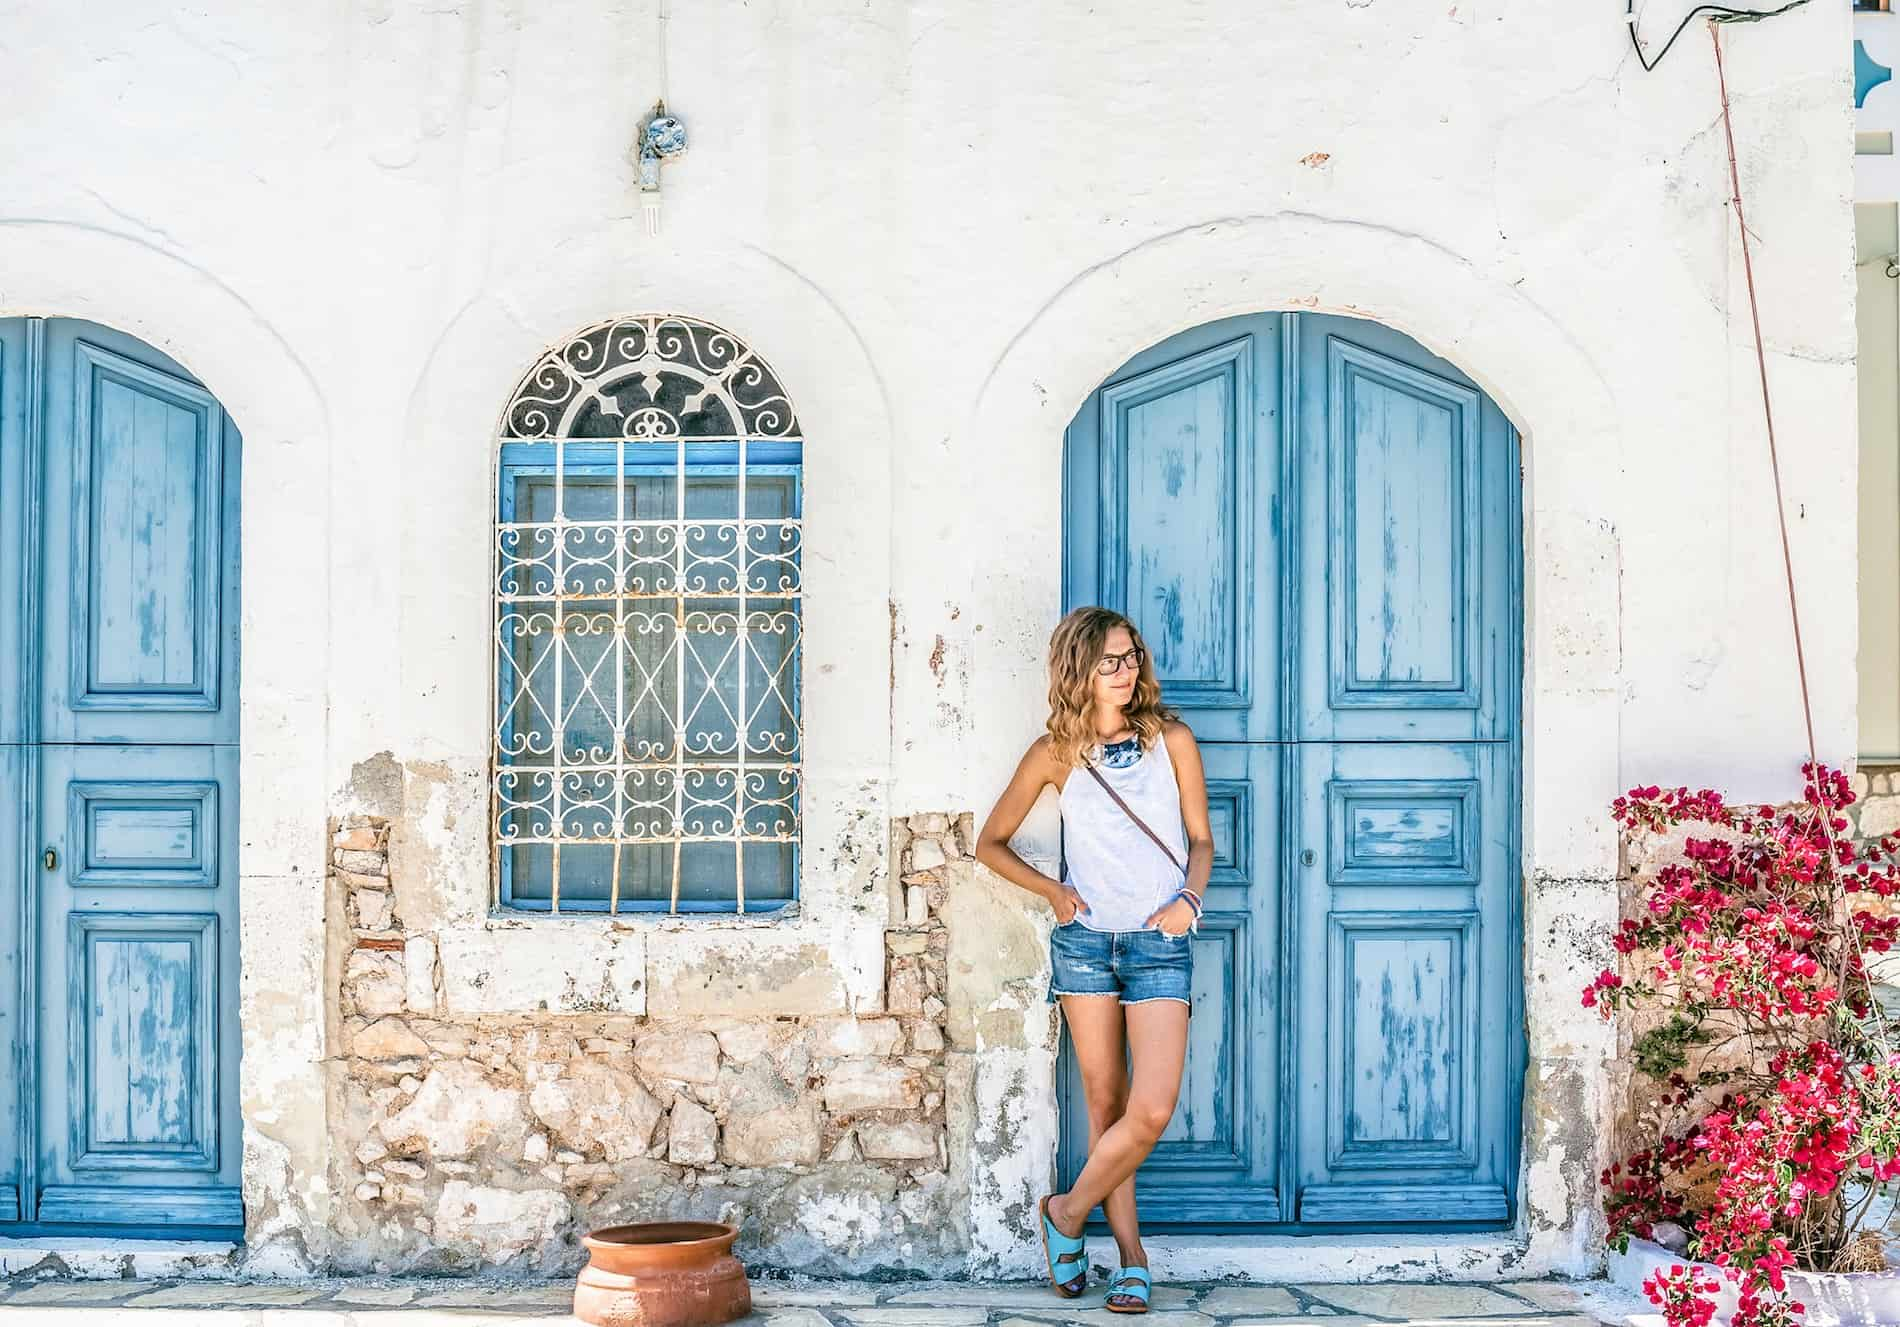 Young woman at typical greek traditional town with colorful buildings on Greek Island, Greece, Europe